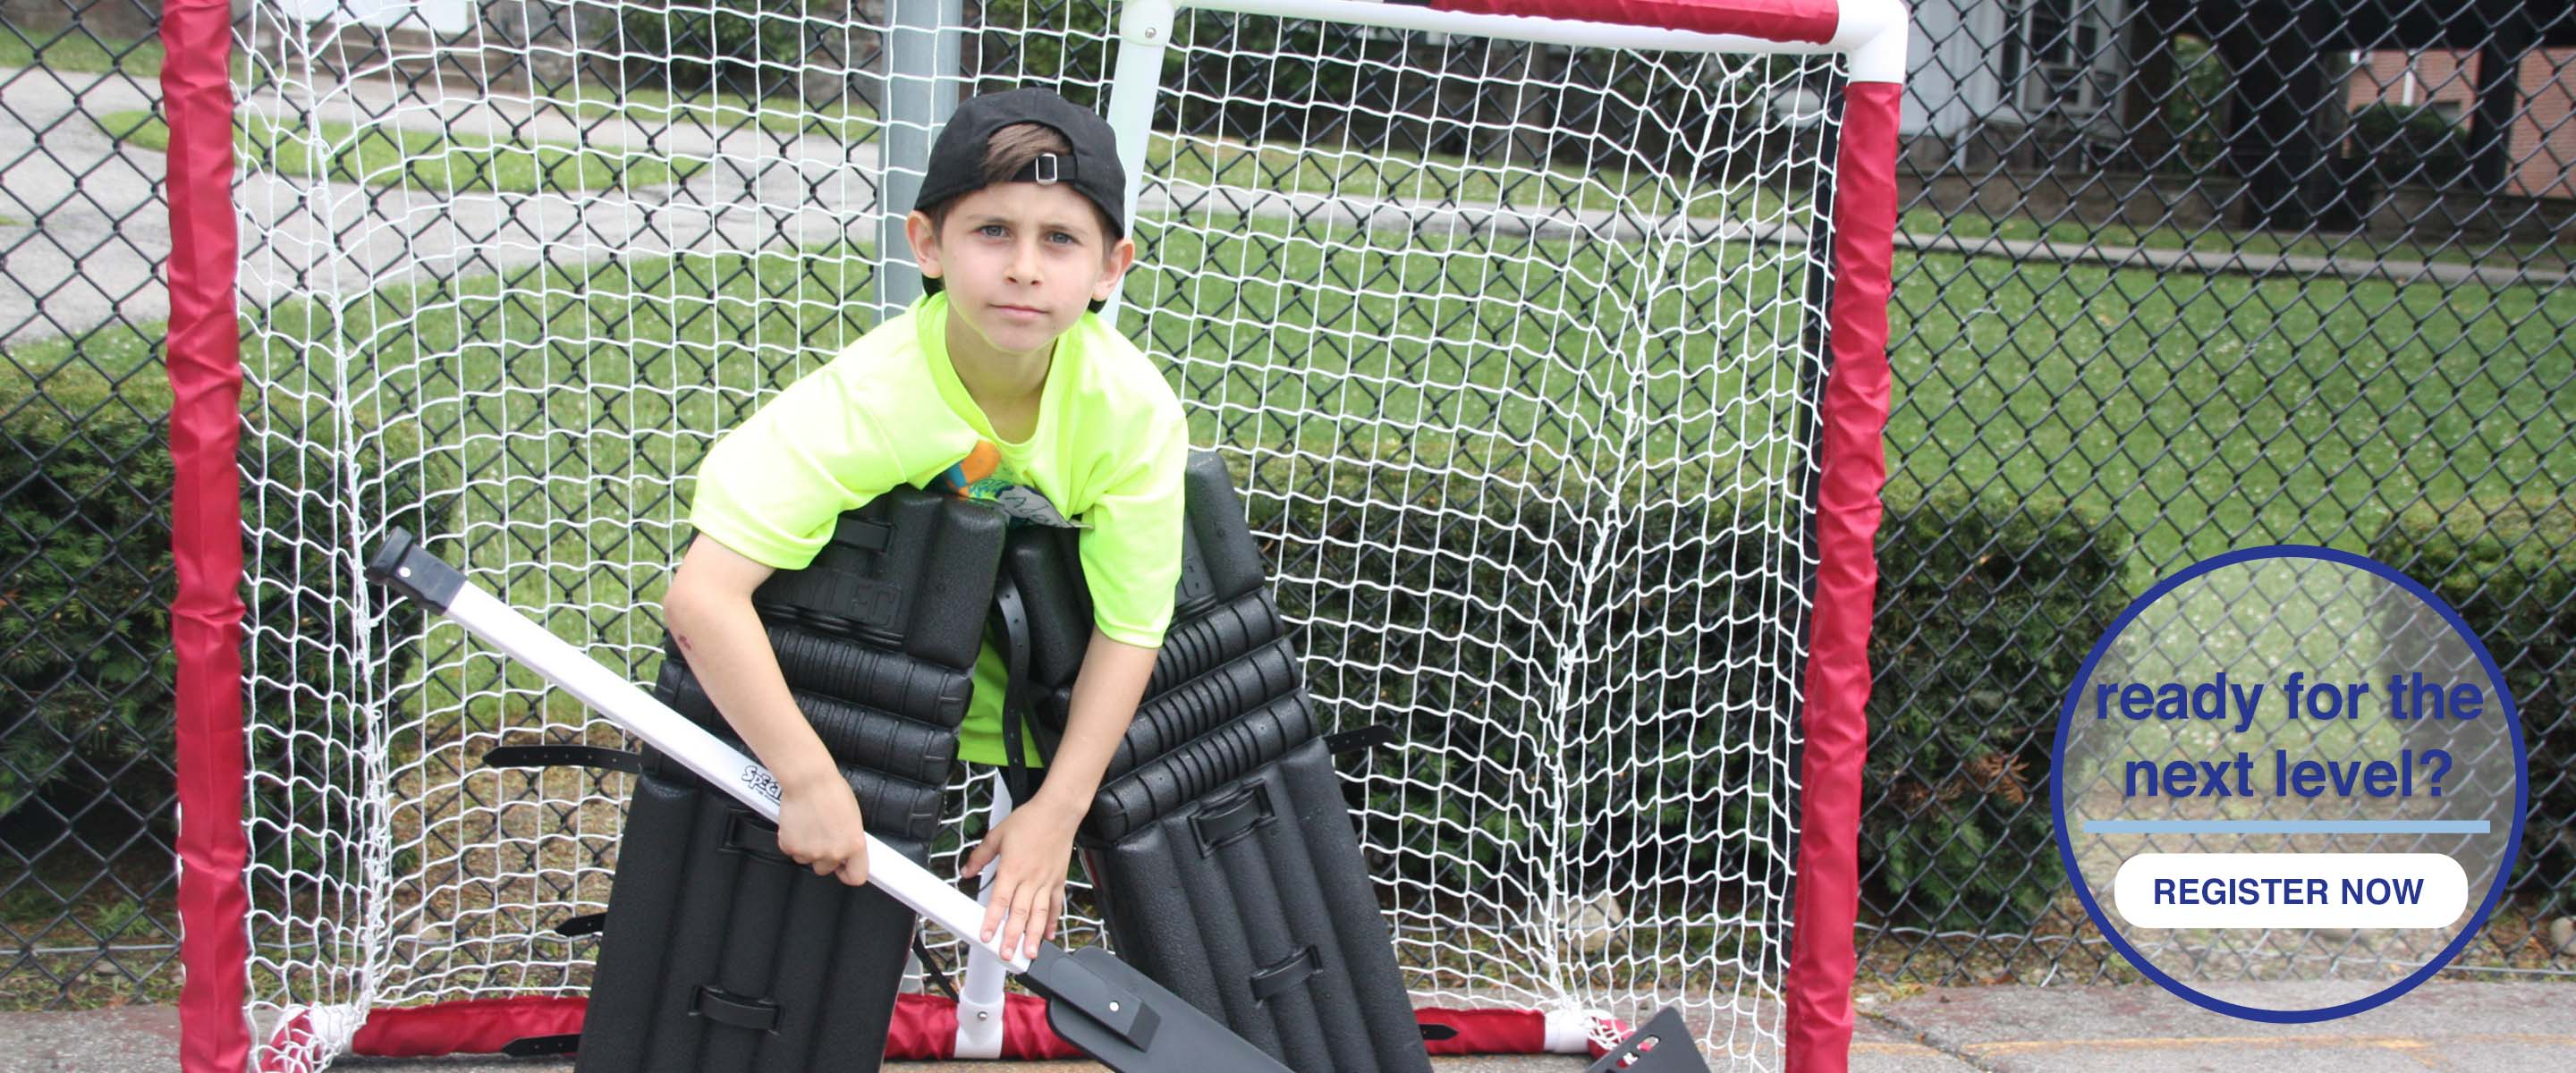 boys Sports camps